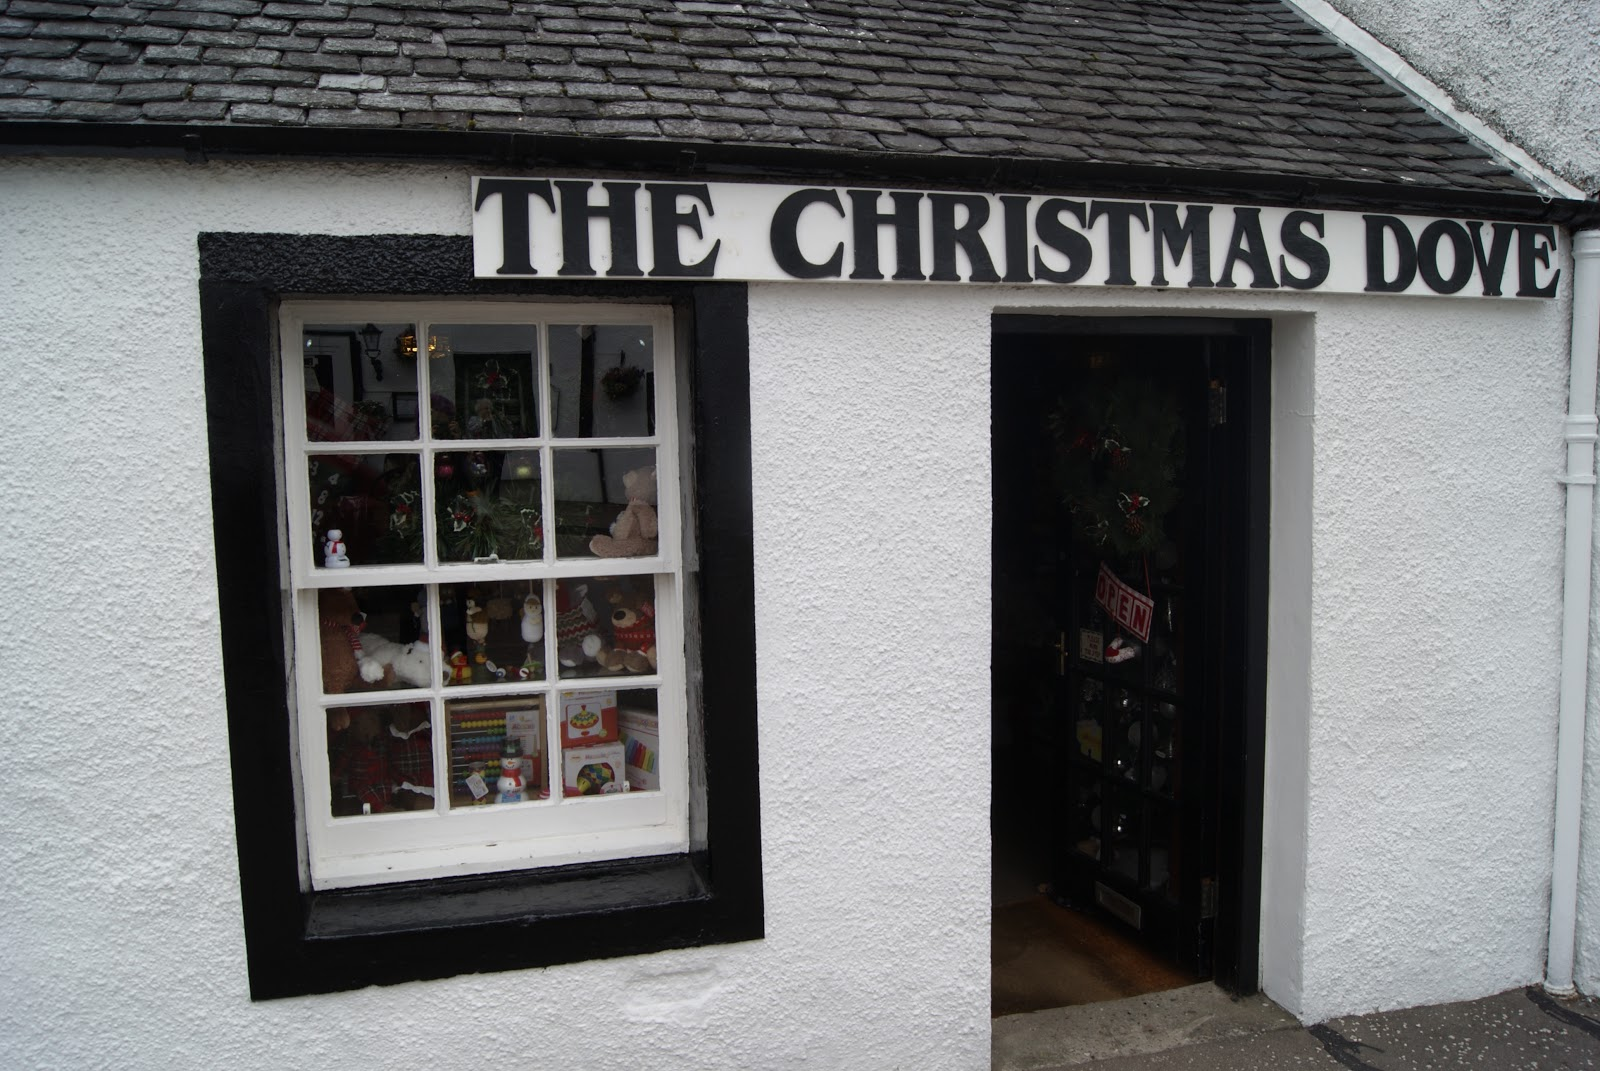 Inveraray, Scotland, holidays, Christmas